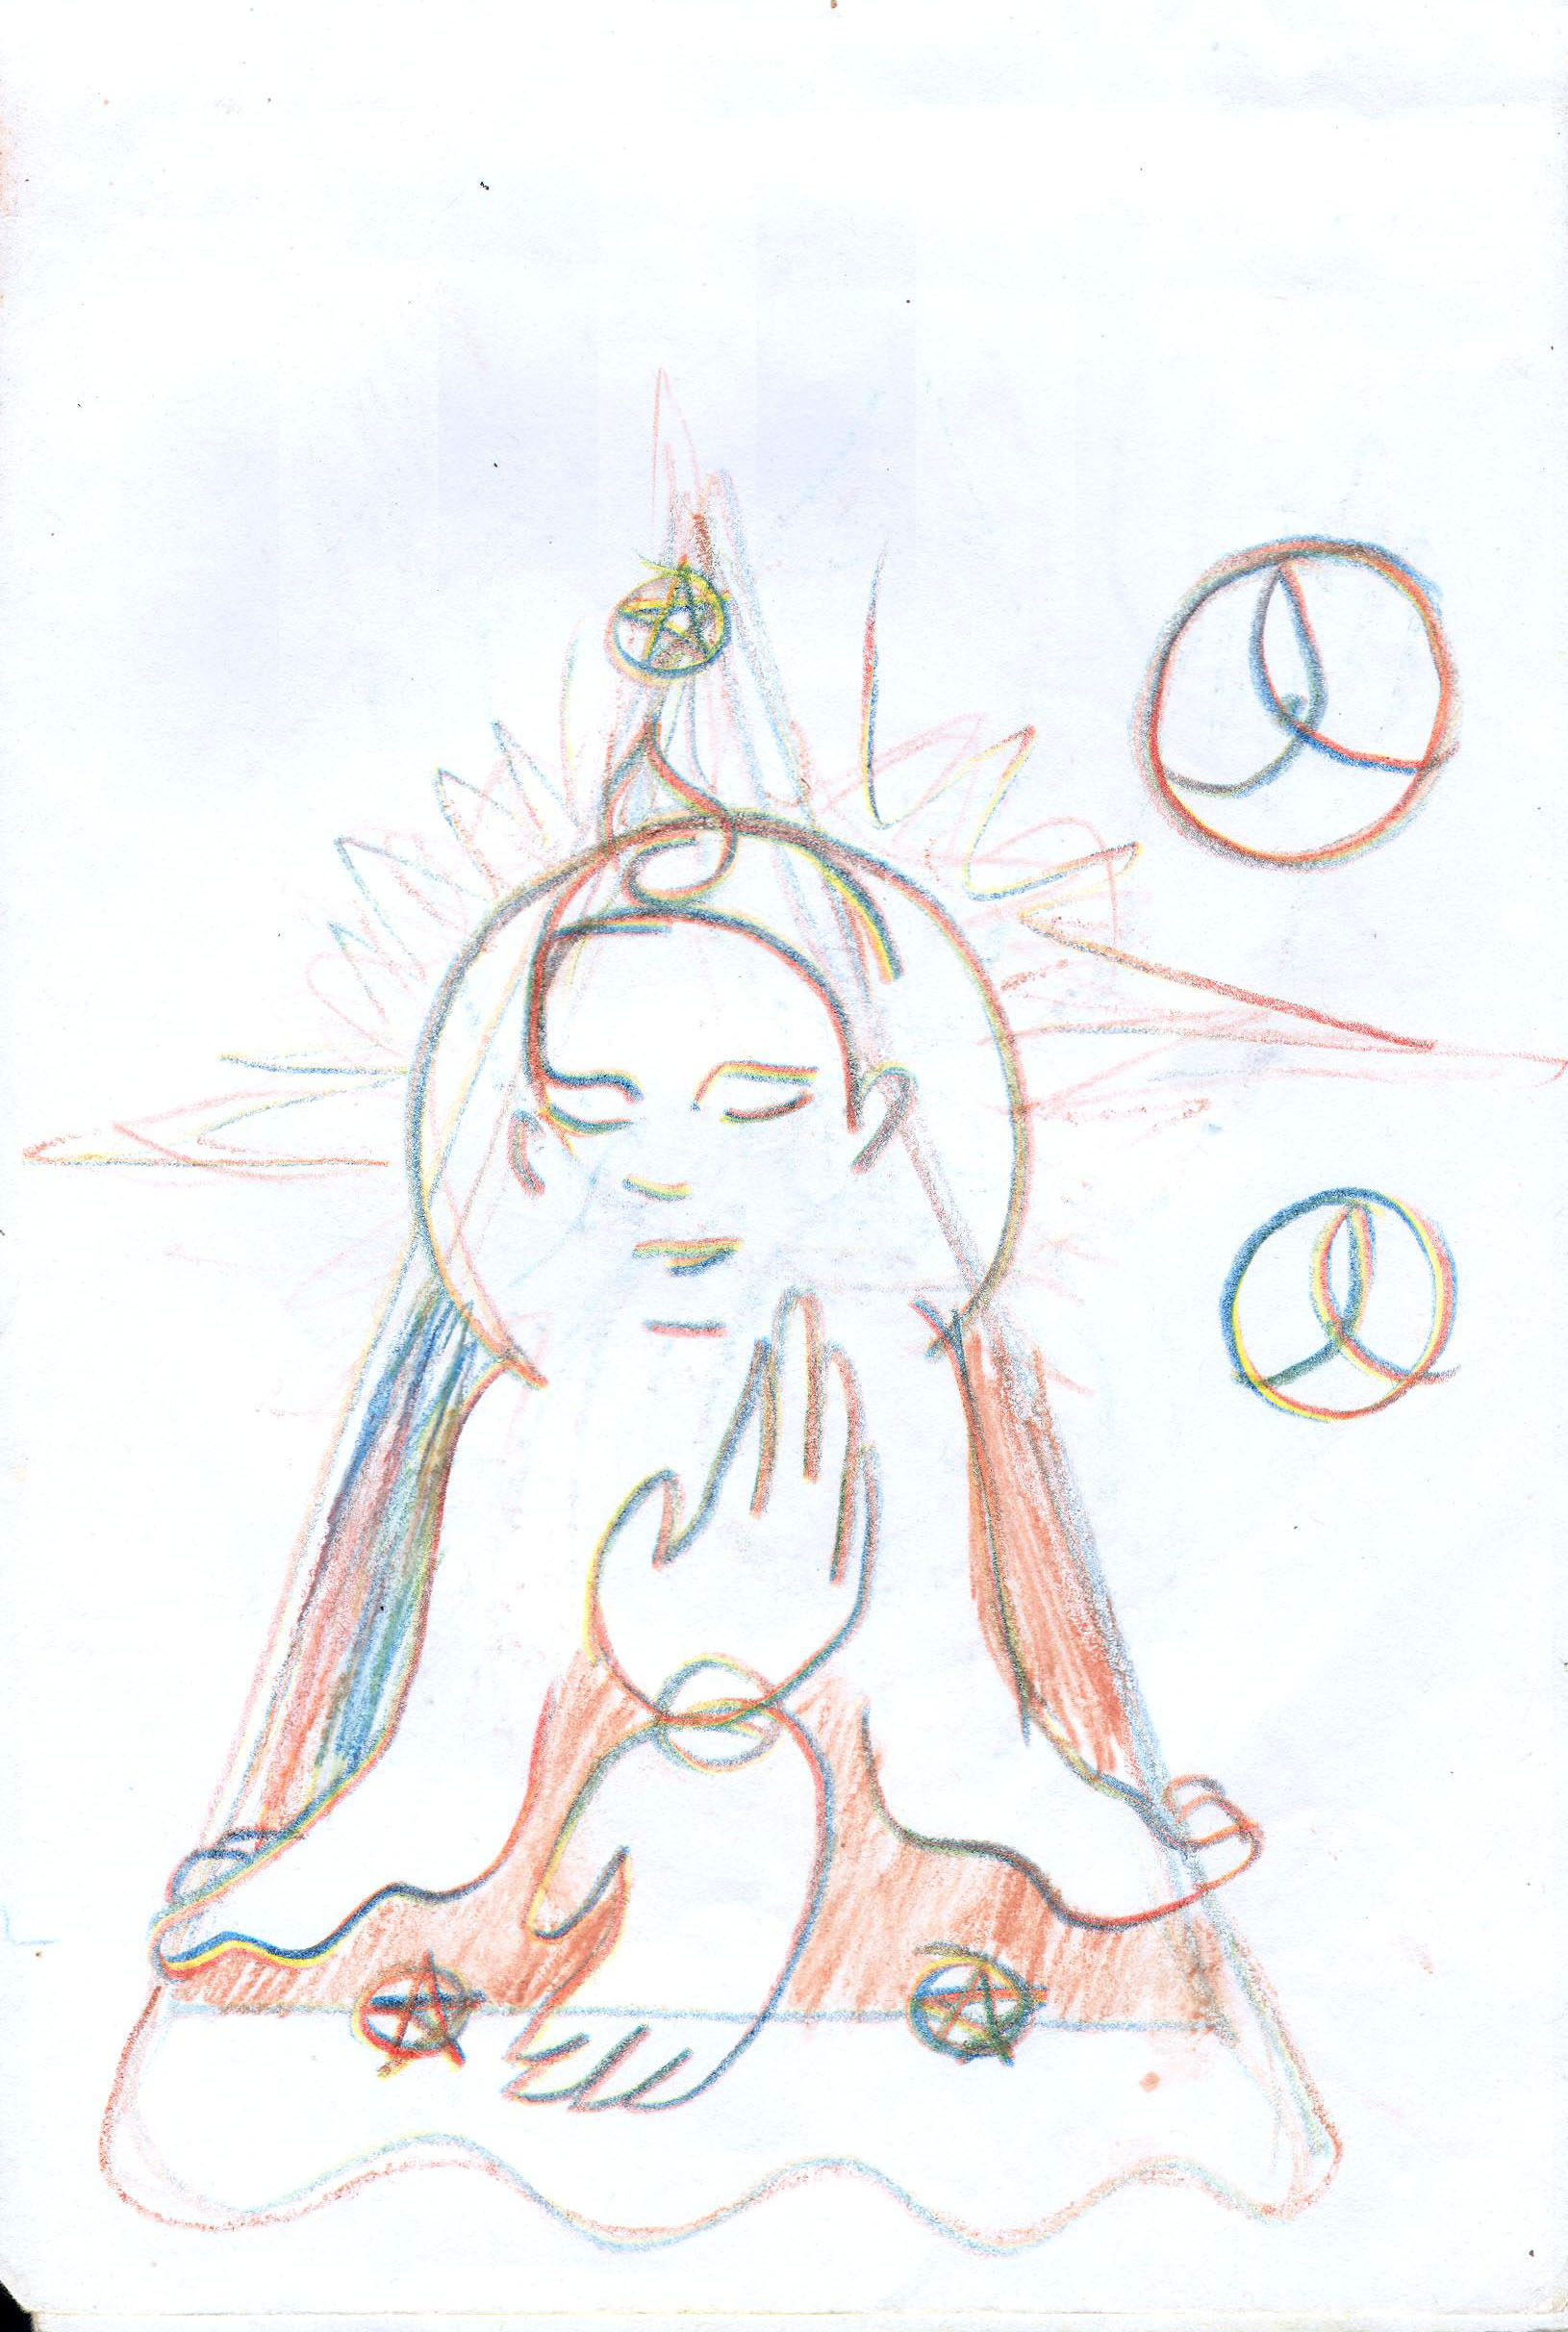 Sketches from the source by a Philippine shaman Bong Delatorre 55